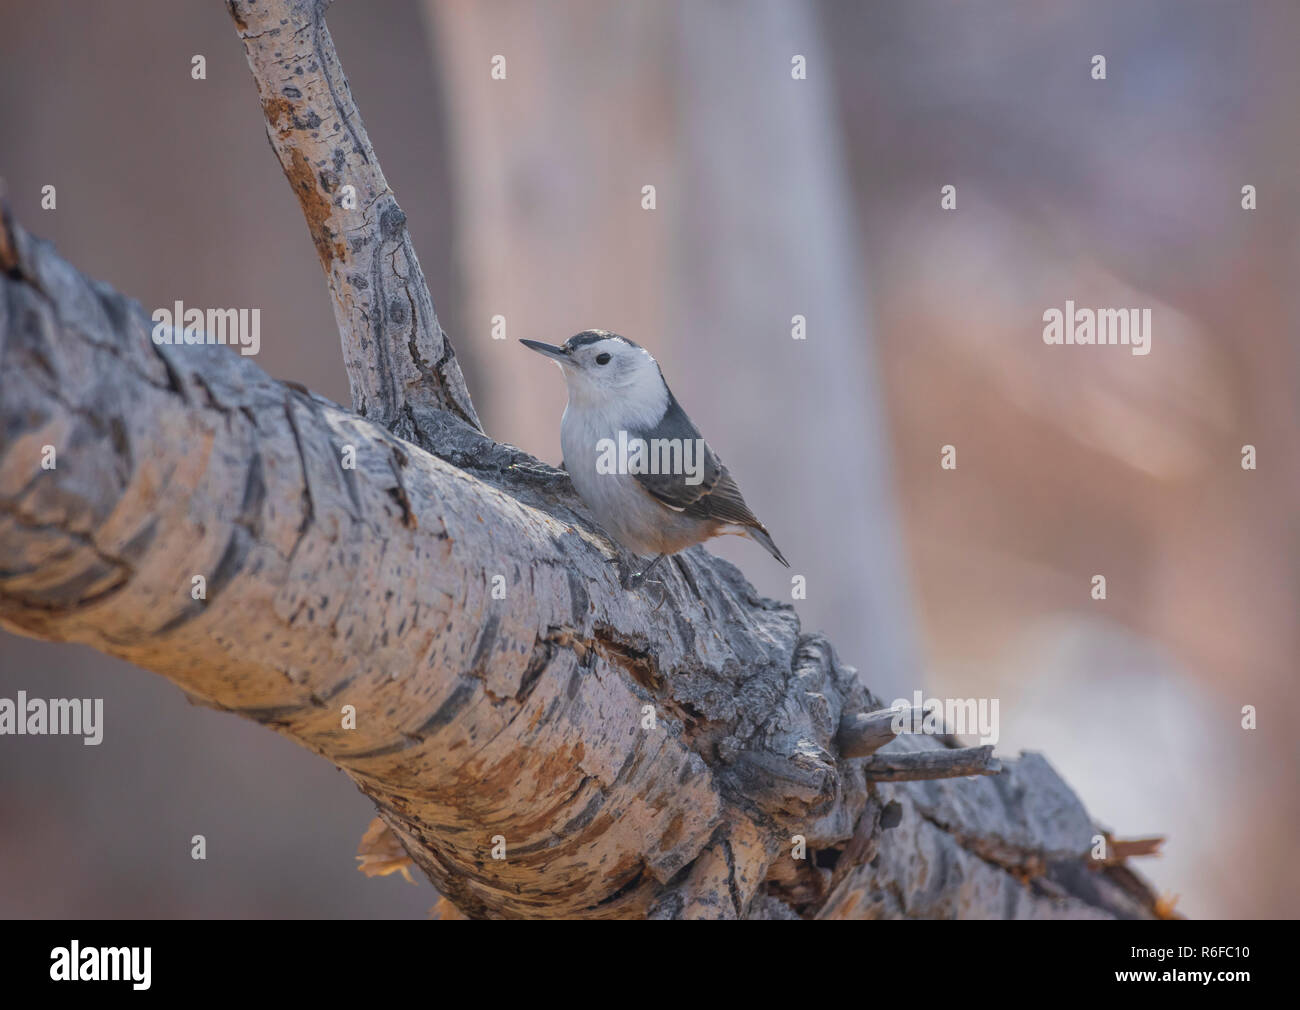 White-breasted nuthatch (Sitta carolinensis) in Cottonwood tree, Castle Rock Colorado US. Photo taken in November. - Stock Image